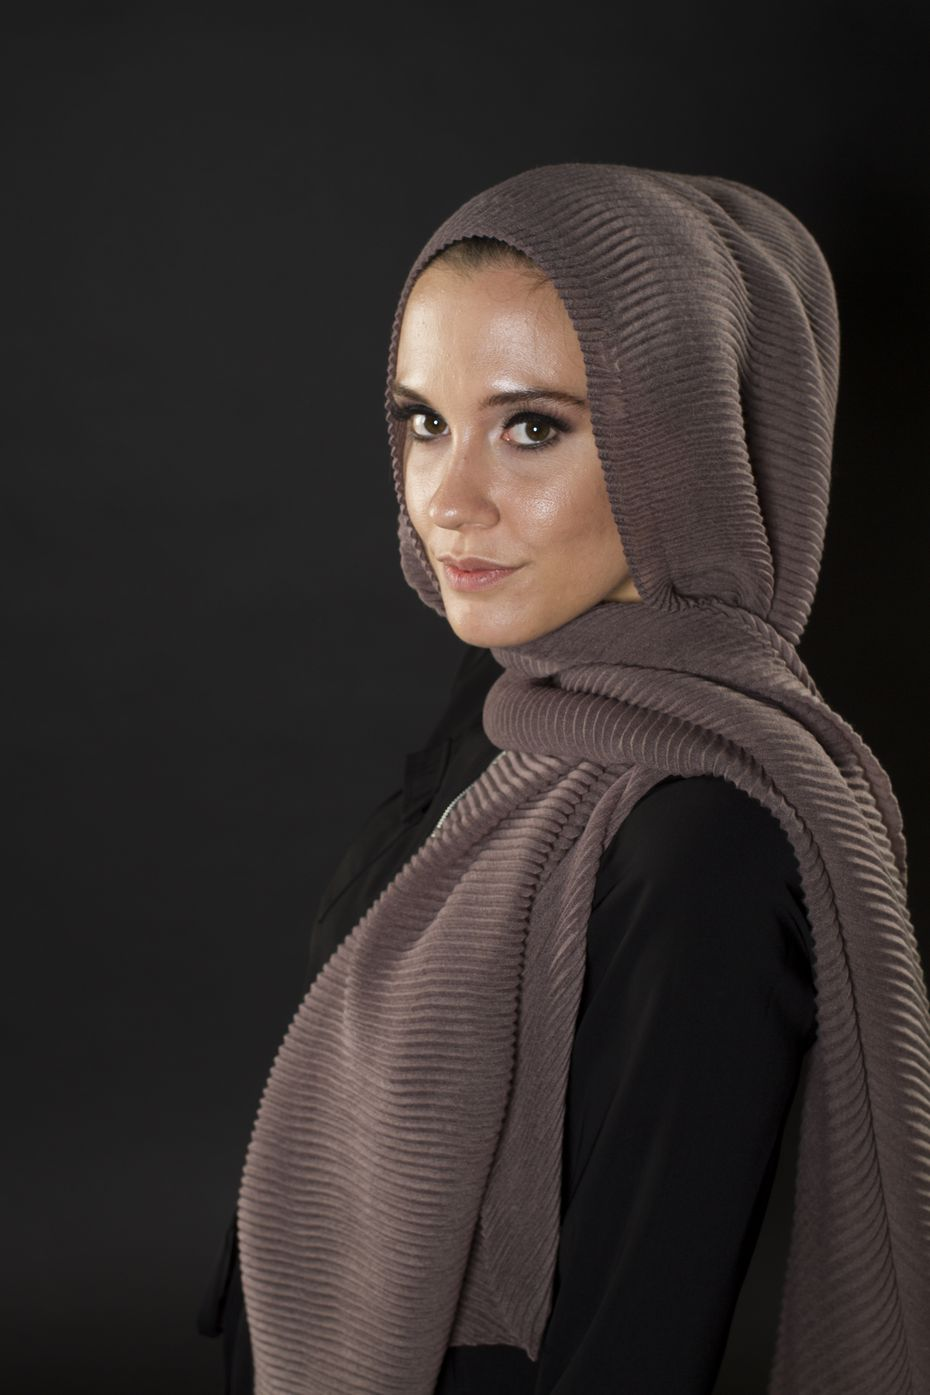 Lisa Vogl is a business partner and friend of Alaa Ammuss in their Verona Collection.